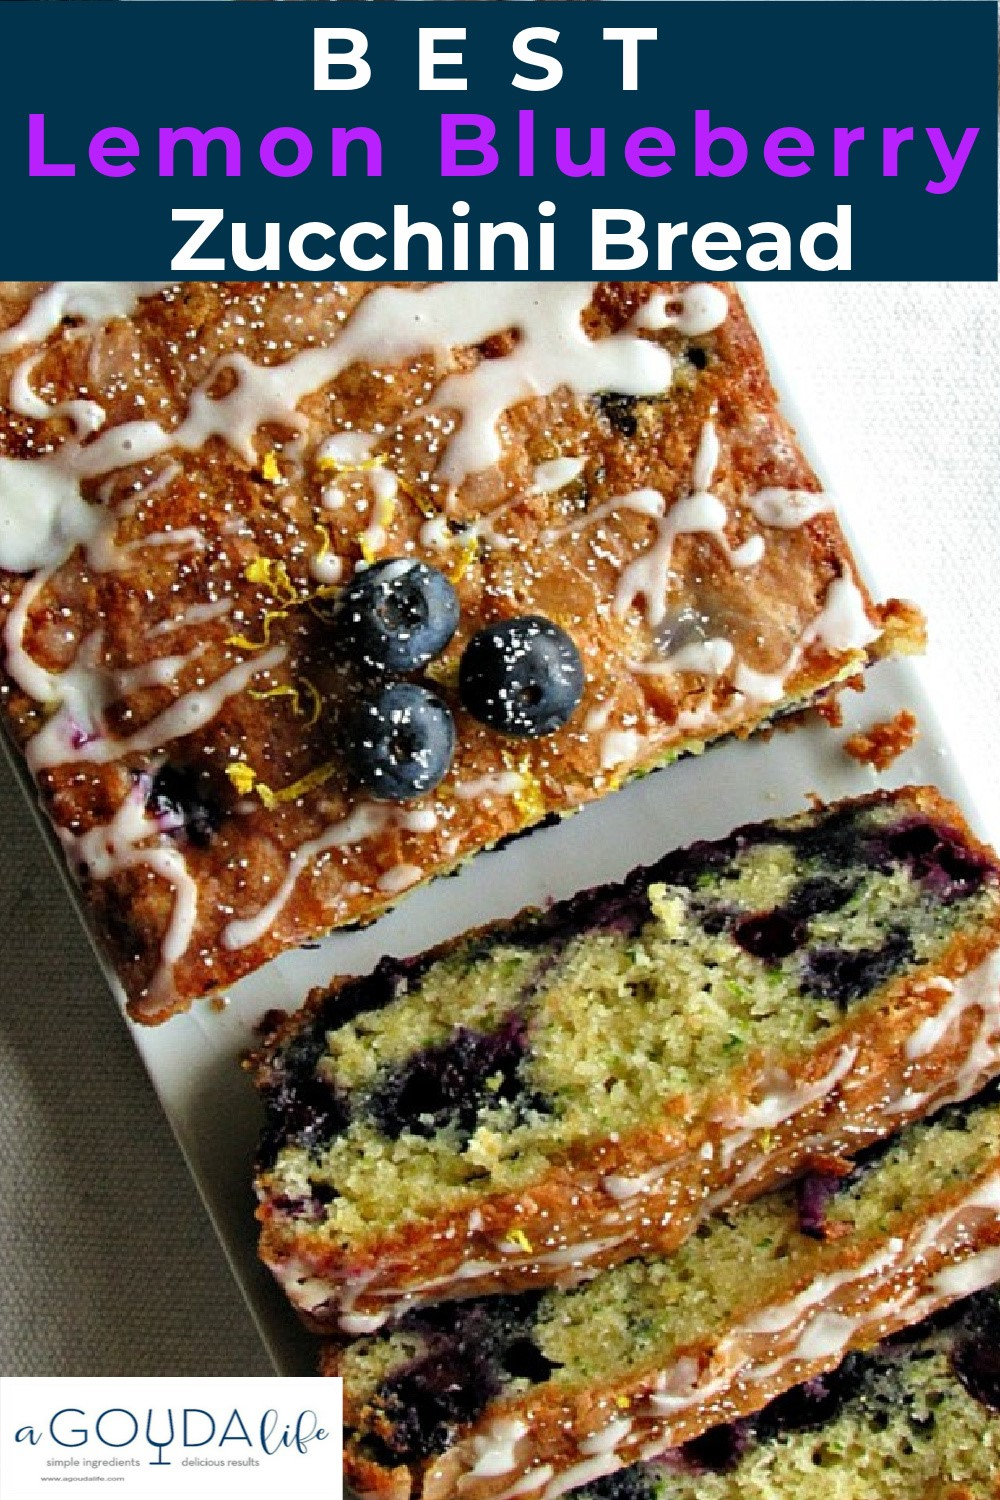 overhead view of glazed, sliced lemon blueberry zucchini bread